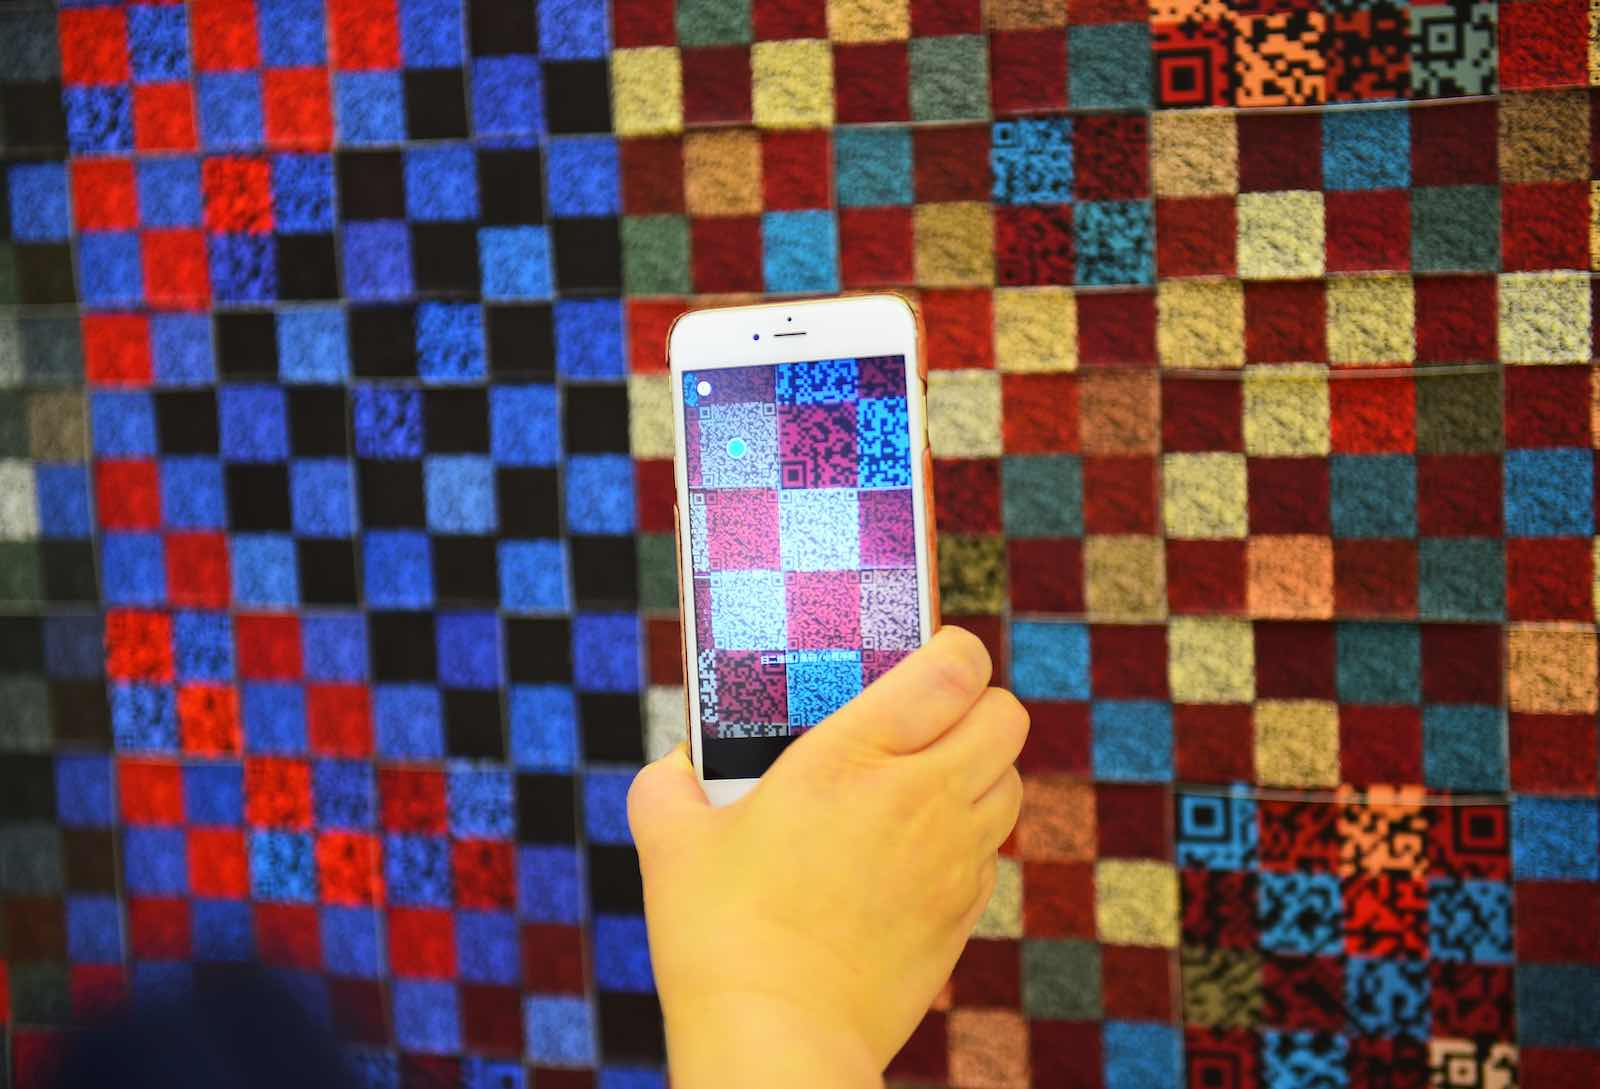 A visitor scans the QR code on an exhibit at an exhibition of traditional crafts in Urumqi, Xinjiang (Hou Zhaokang/Xinhua via Getty Images)